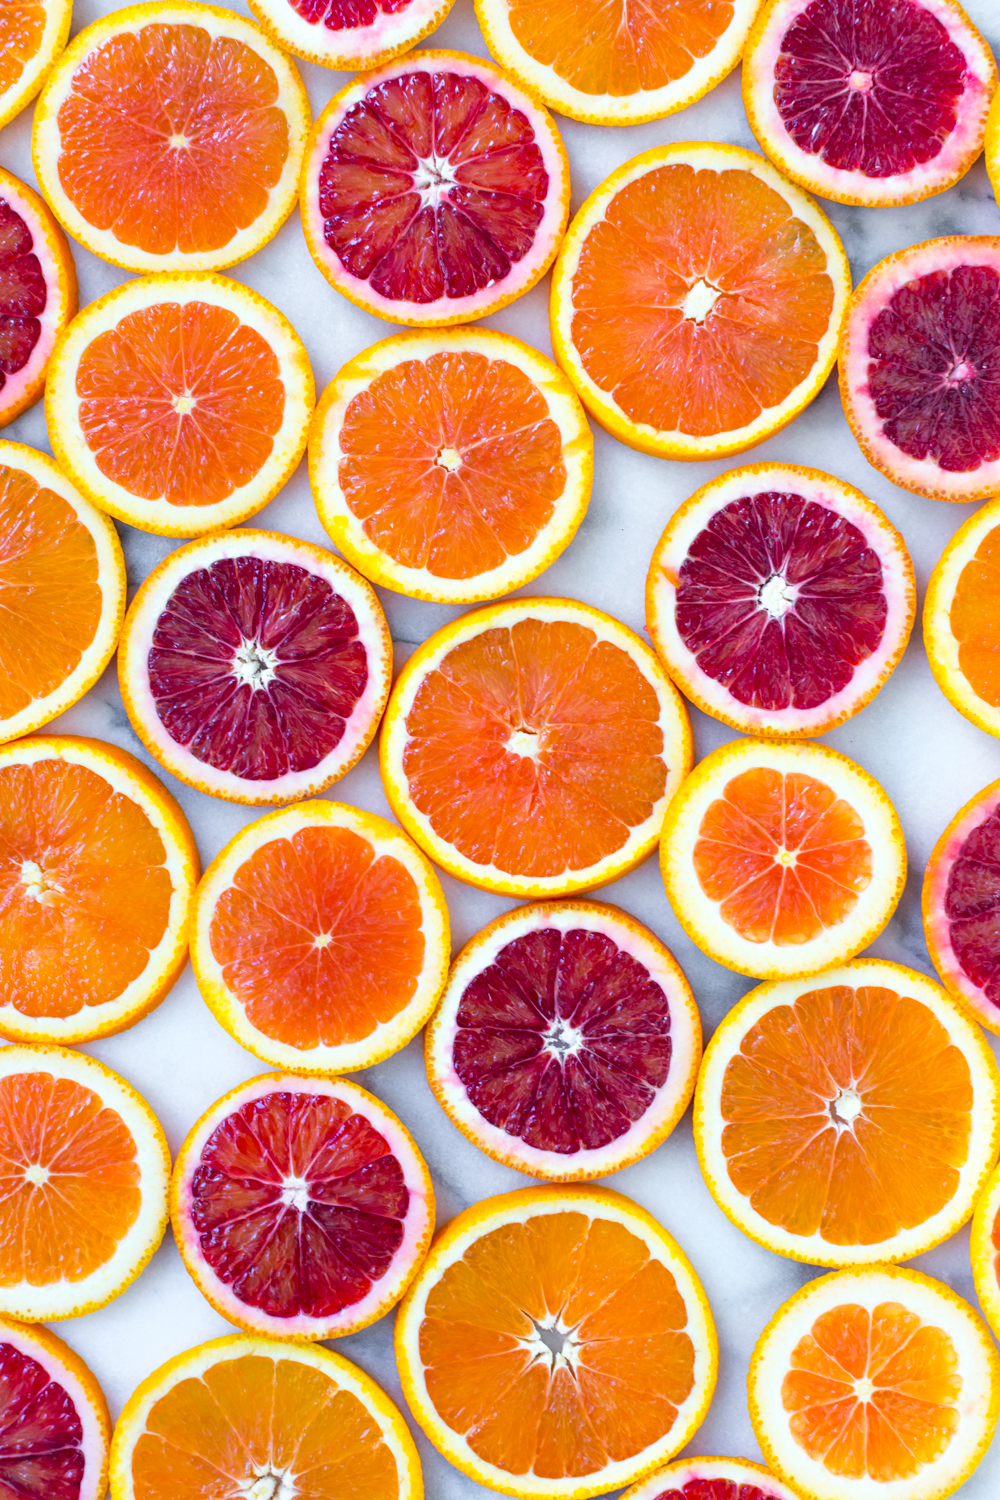 Broiled Orange Whipped Ricotta Toasts-Slices of Cara Cara Oranges and Blood Oranges